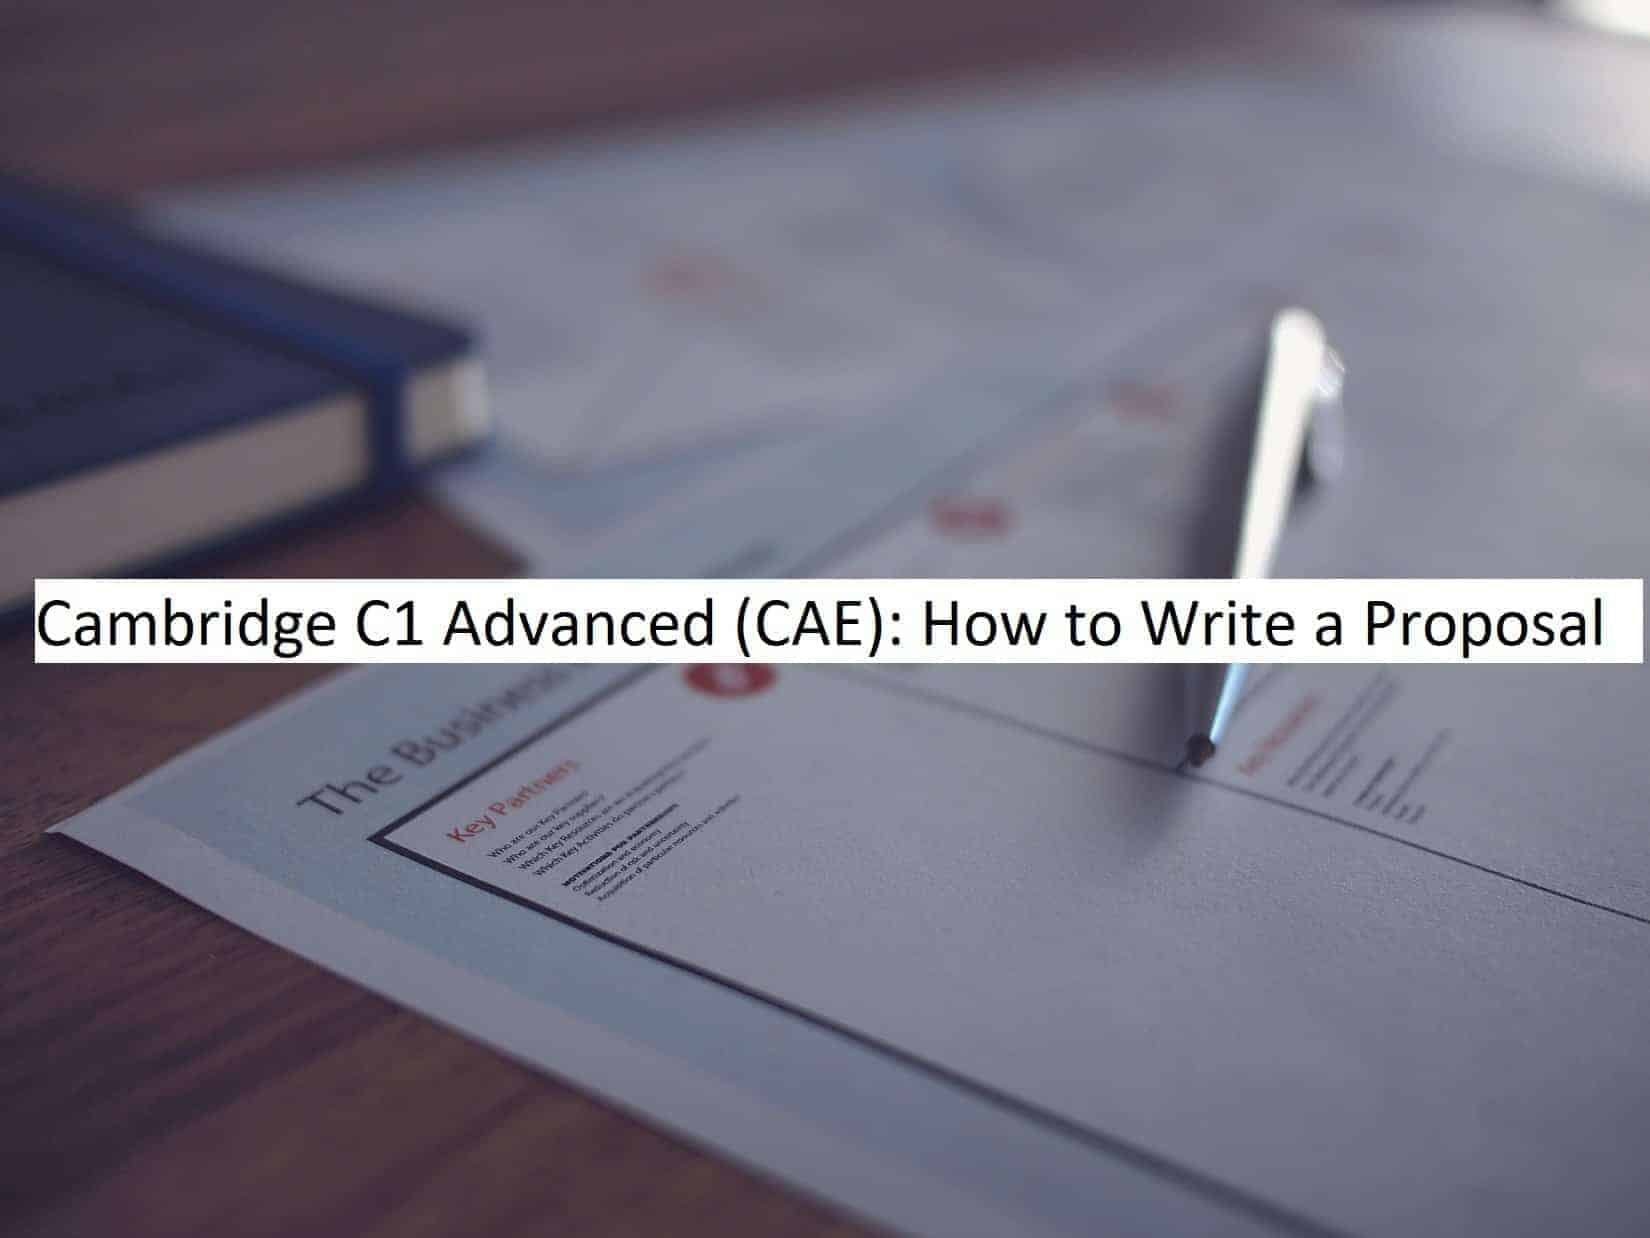 CAE - Writing a Proposal